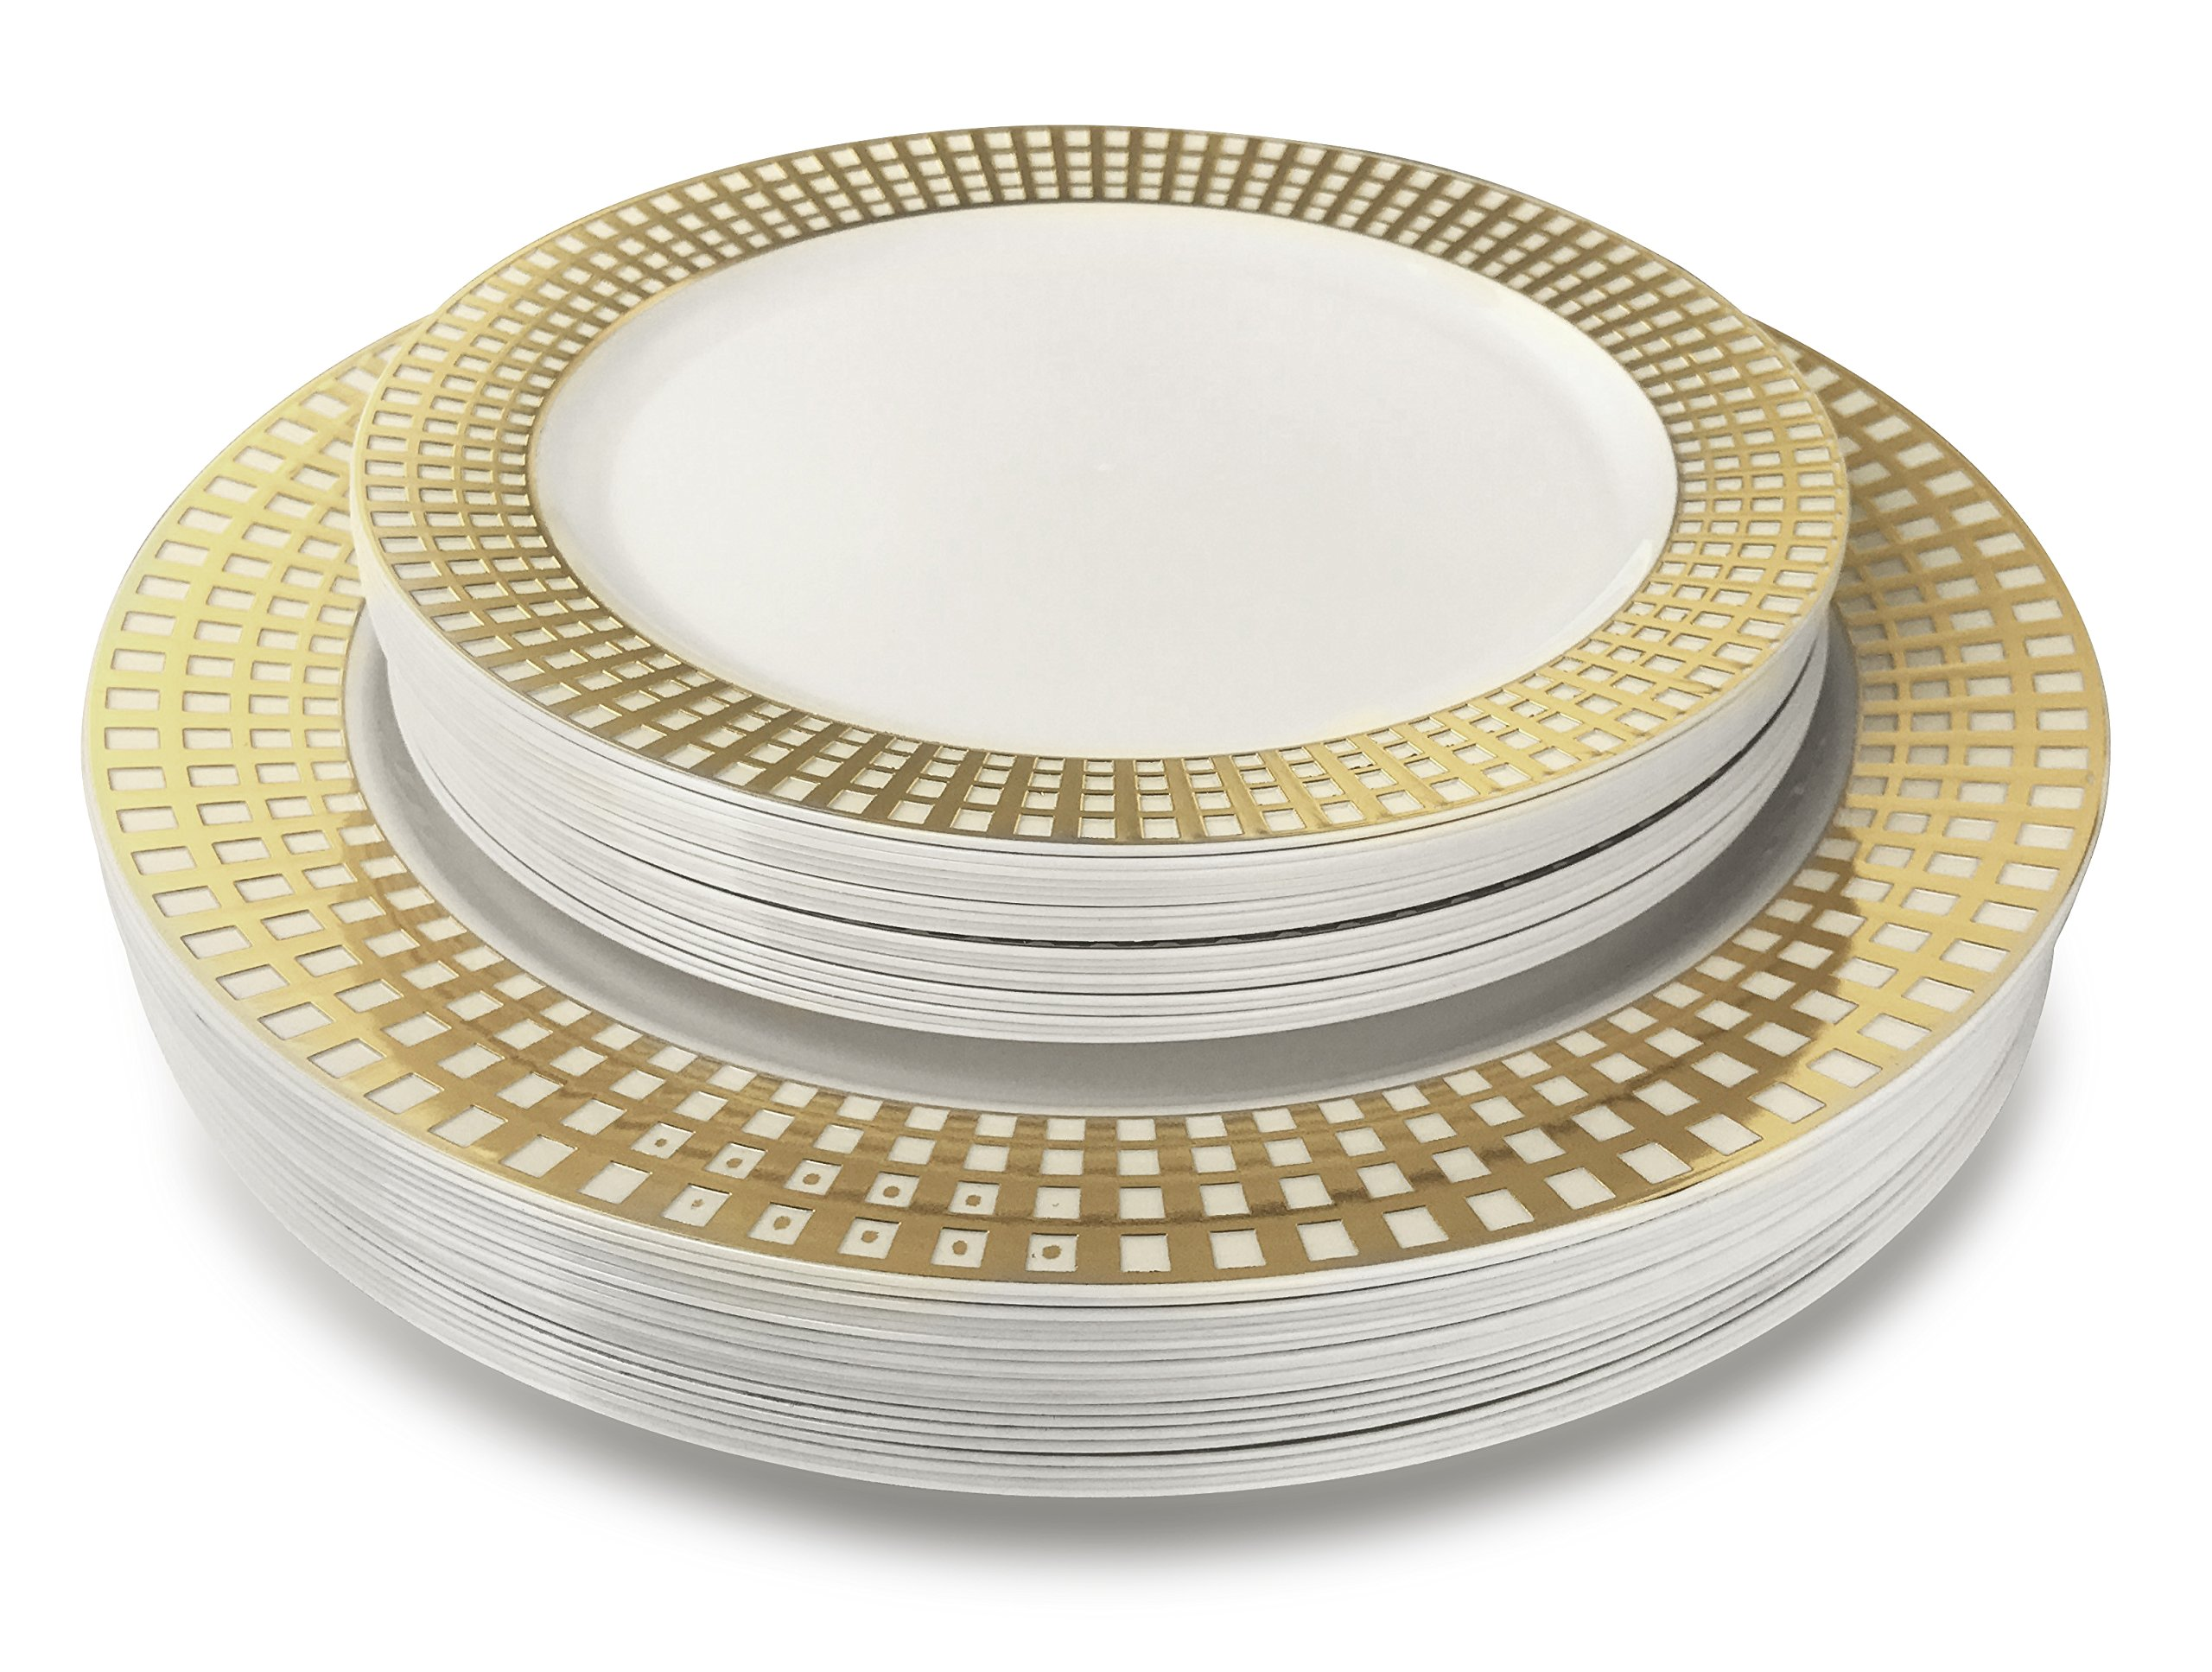 '' OCCASIONS '' 240 Piece Pack Premium Disposable Plastic Plates Set - 60 x 10.25'' Dinner + 60 x 7.5'' Salad / dessert (240, Princess White /Gold) by OCCASIONS FINEST PLASTIC TABLEWARE